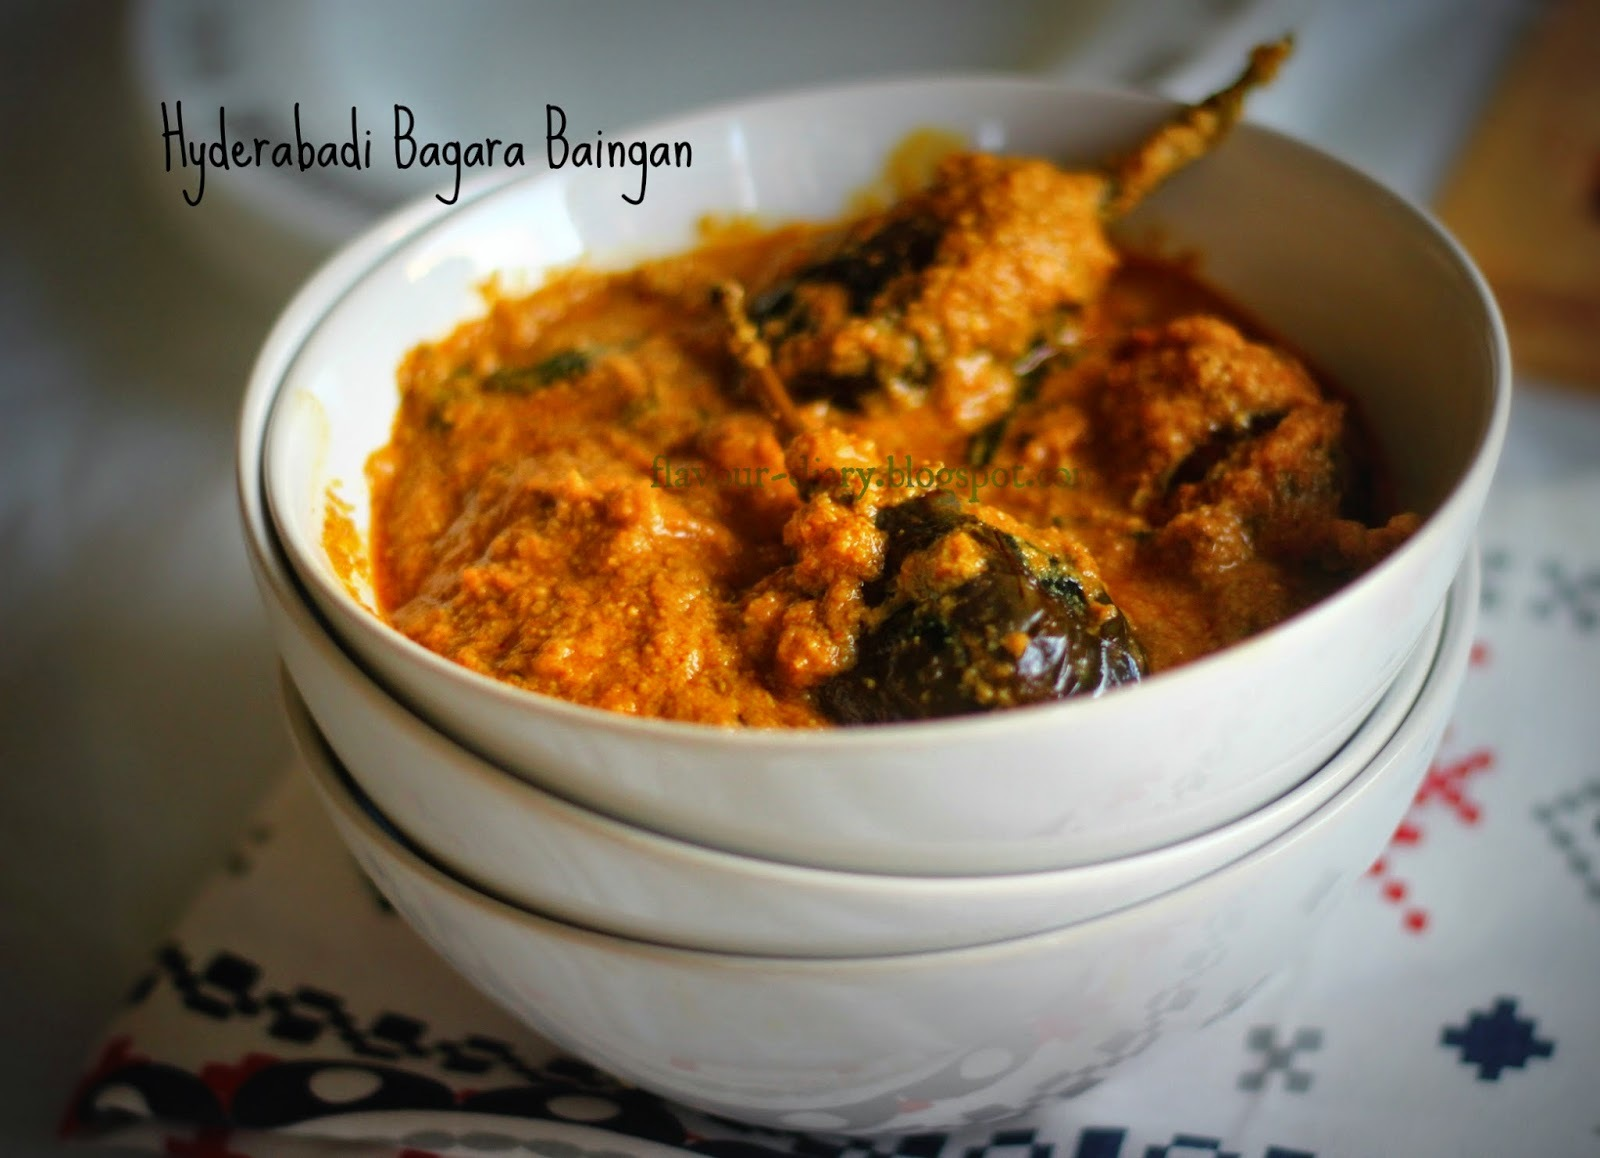 Hyderabadi Bagara Baingan -- Eggplant in tangy masala Curry